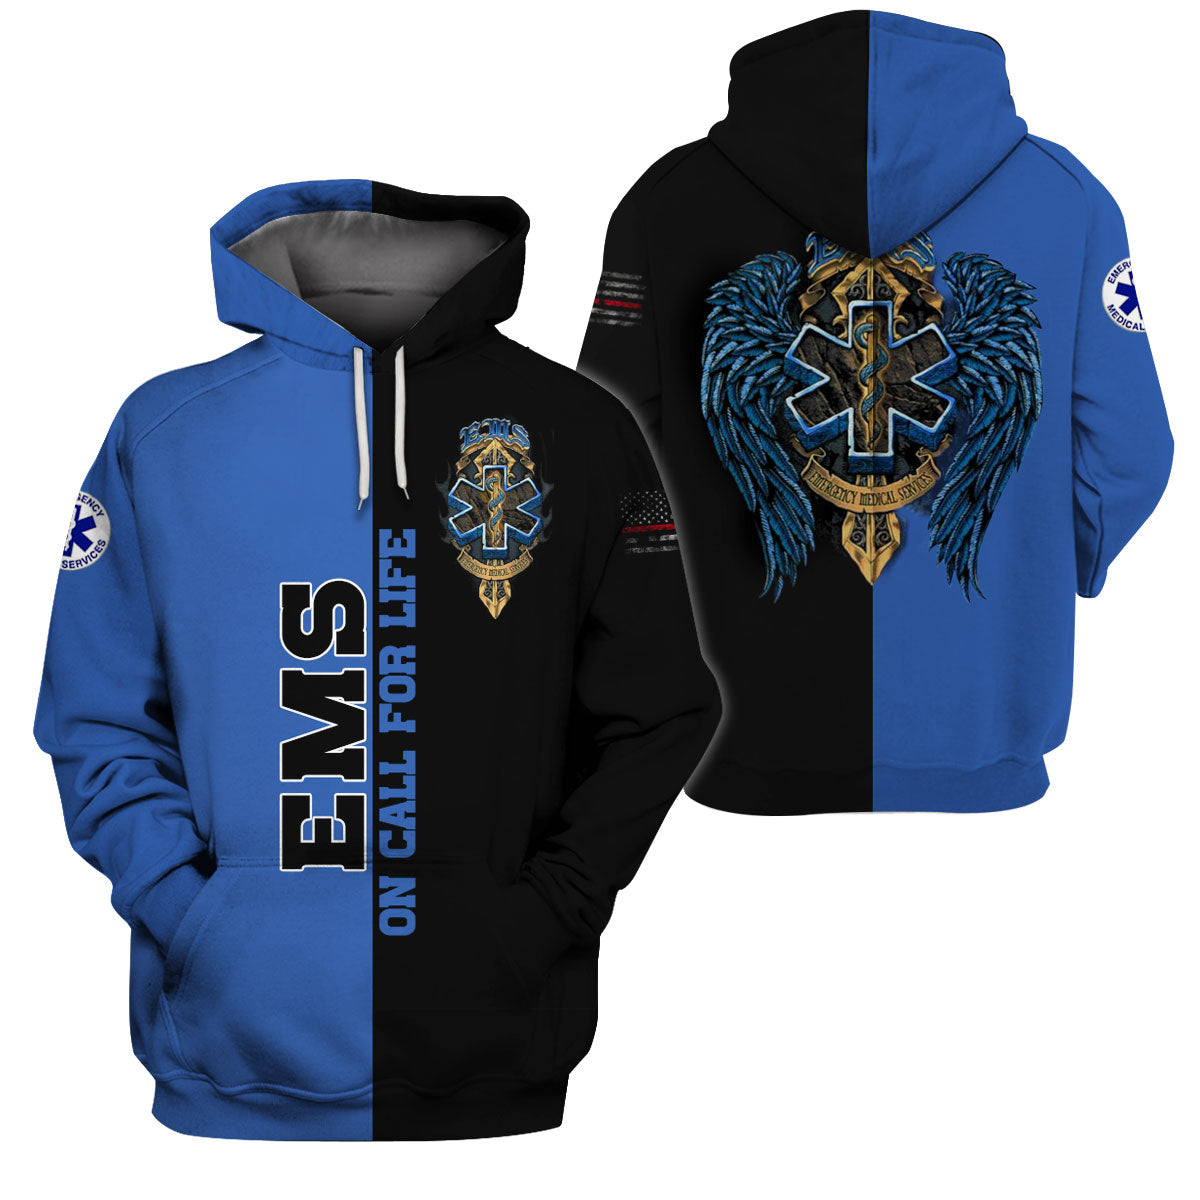 EMS APPAREL 3D ALL OVER PRINTED SHIRTS FOR MEN AND WOMEN - GnWarriors Clothing